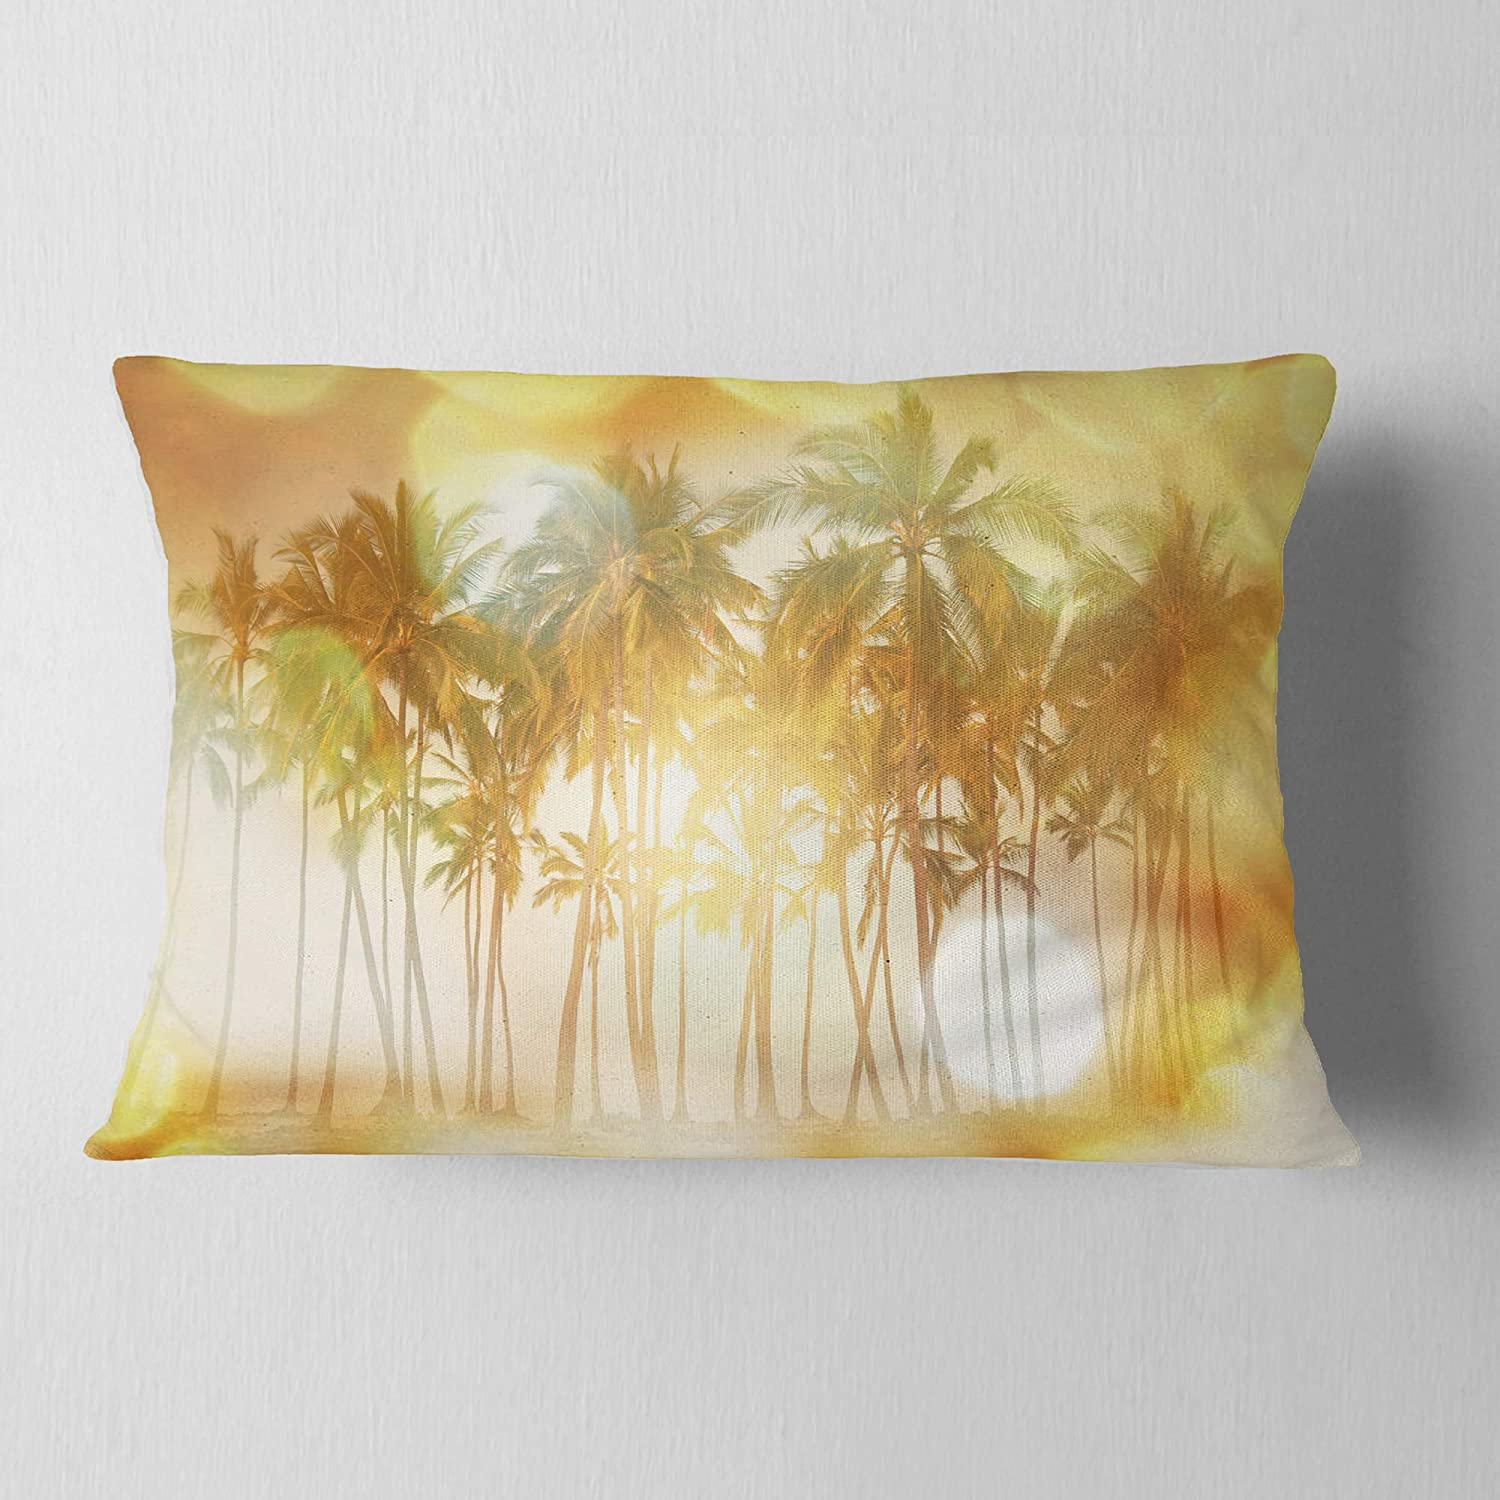 Designart CU12507-12-20 Palms in Serene Tropical Beach Landscape Printed Lumbar Cushion Cover for Living Room Sofa Throw Pillow 12 in in x 20 in Insert Side